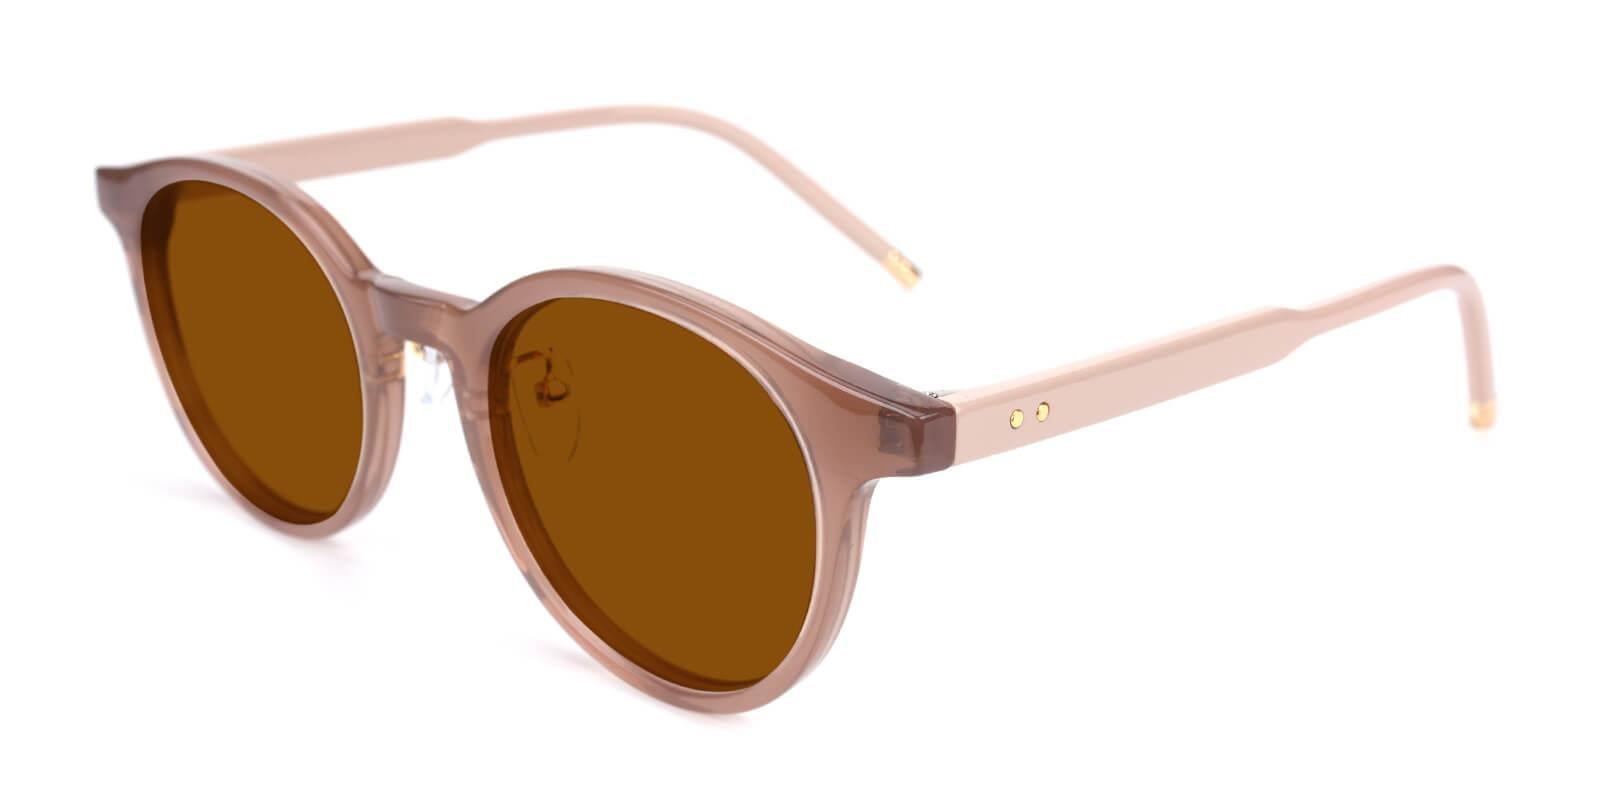 Chiny-Multicolor-Round / Cat-TR-Sunglasses-additional1